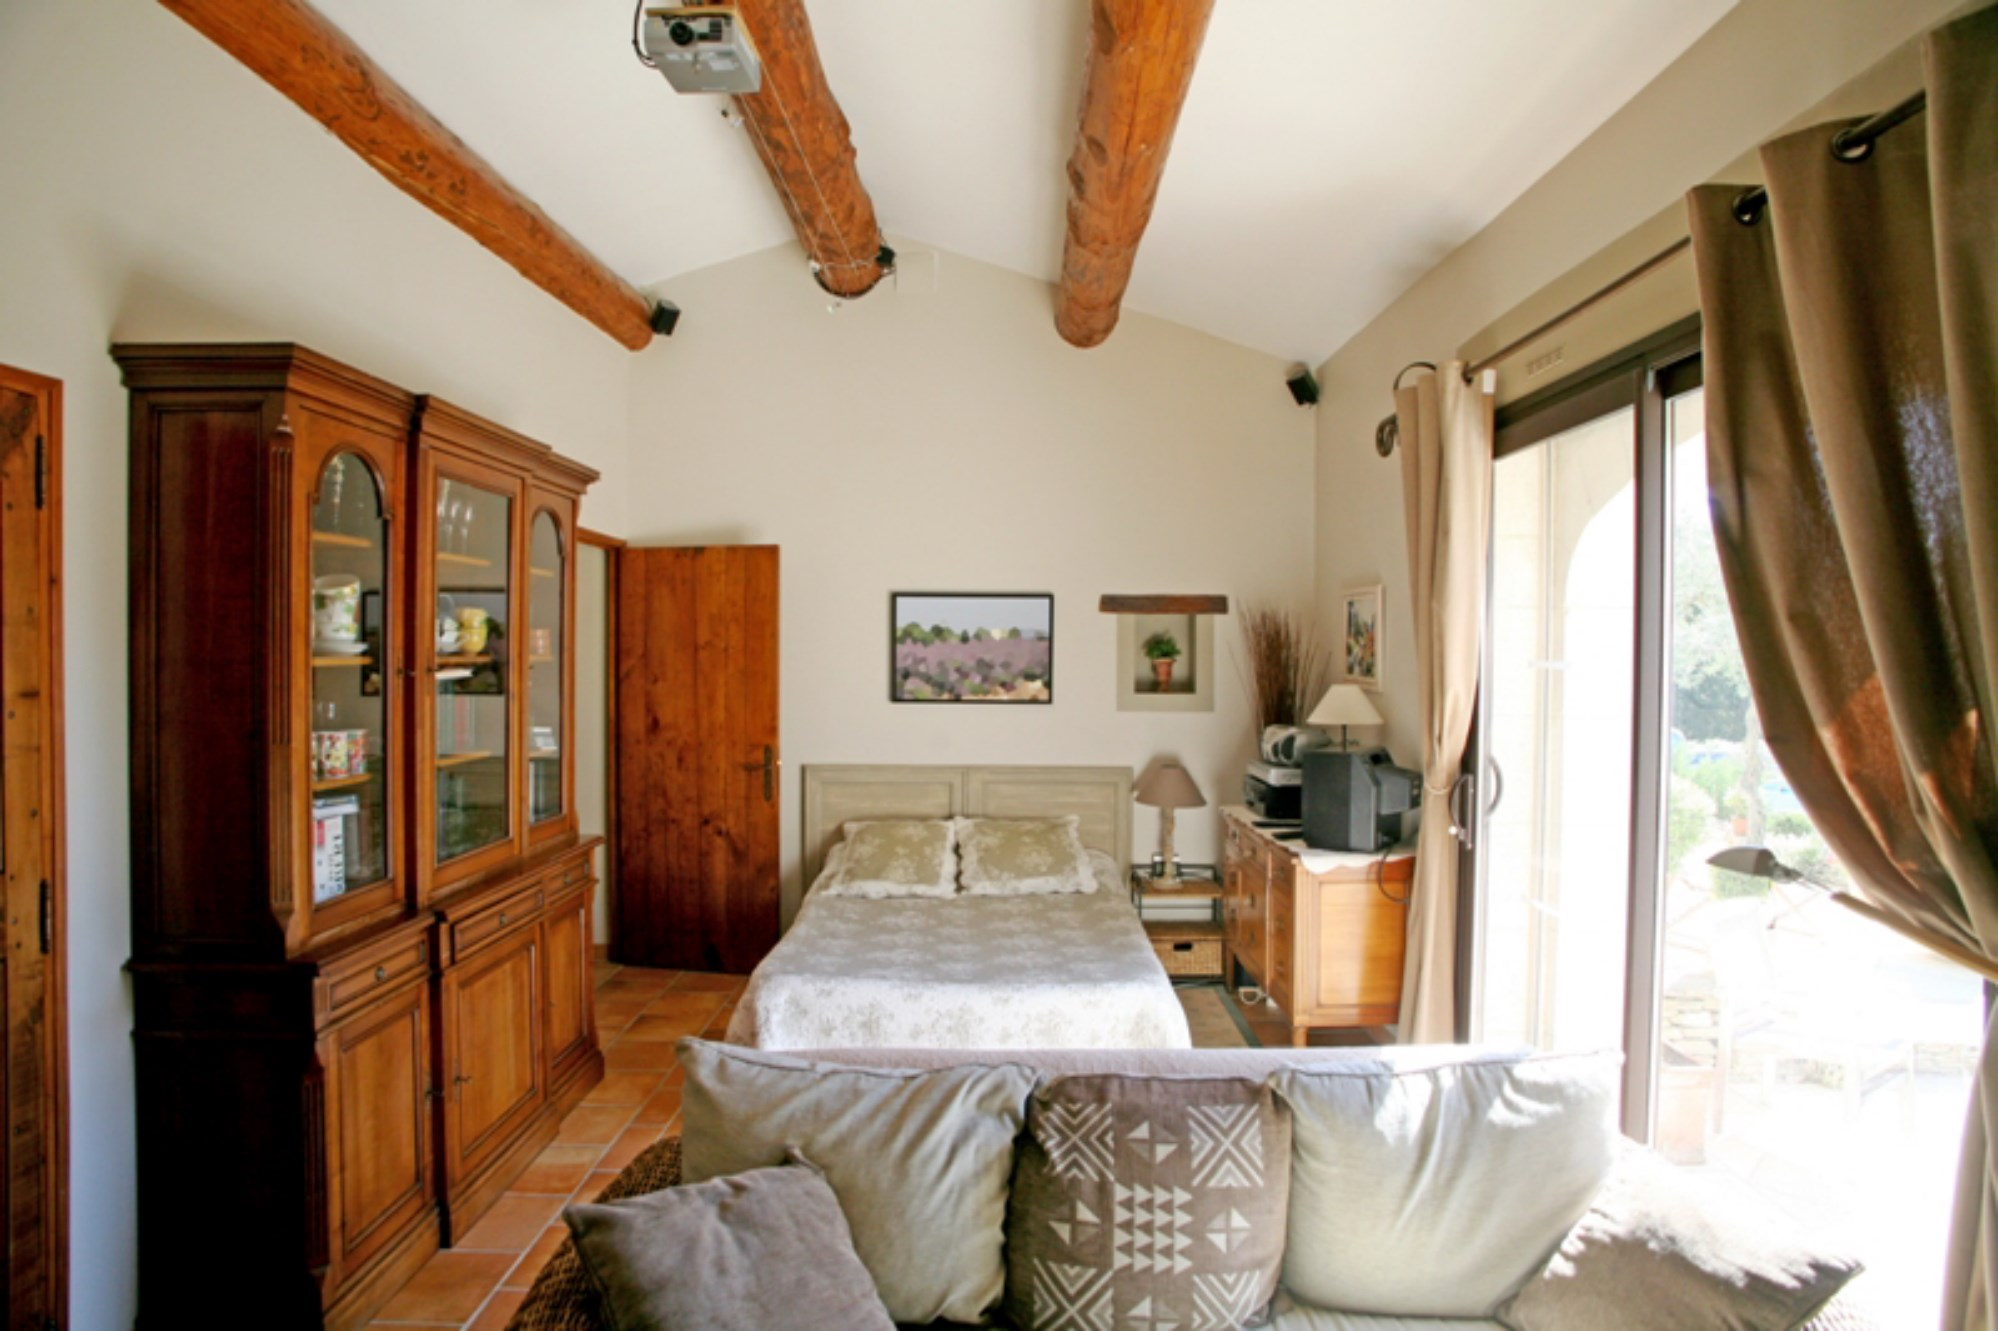 Near Gordes in Luberon for sale lovely house with terrace garden ...